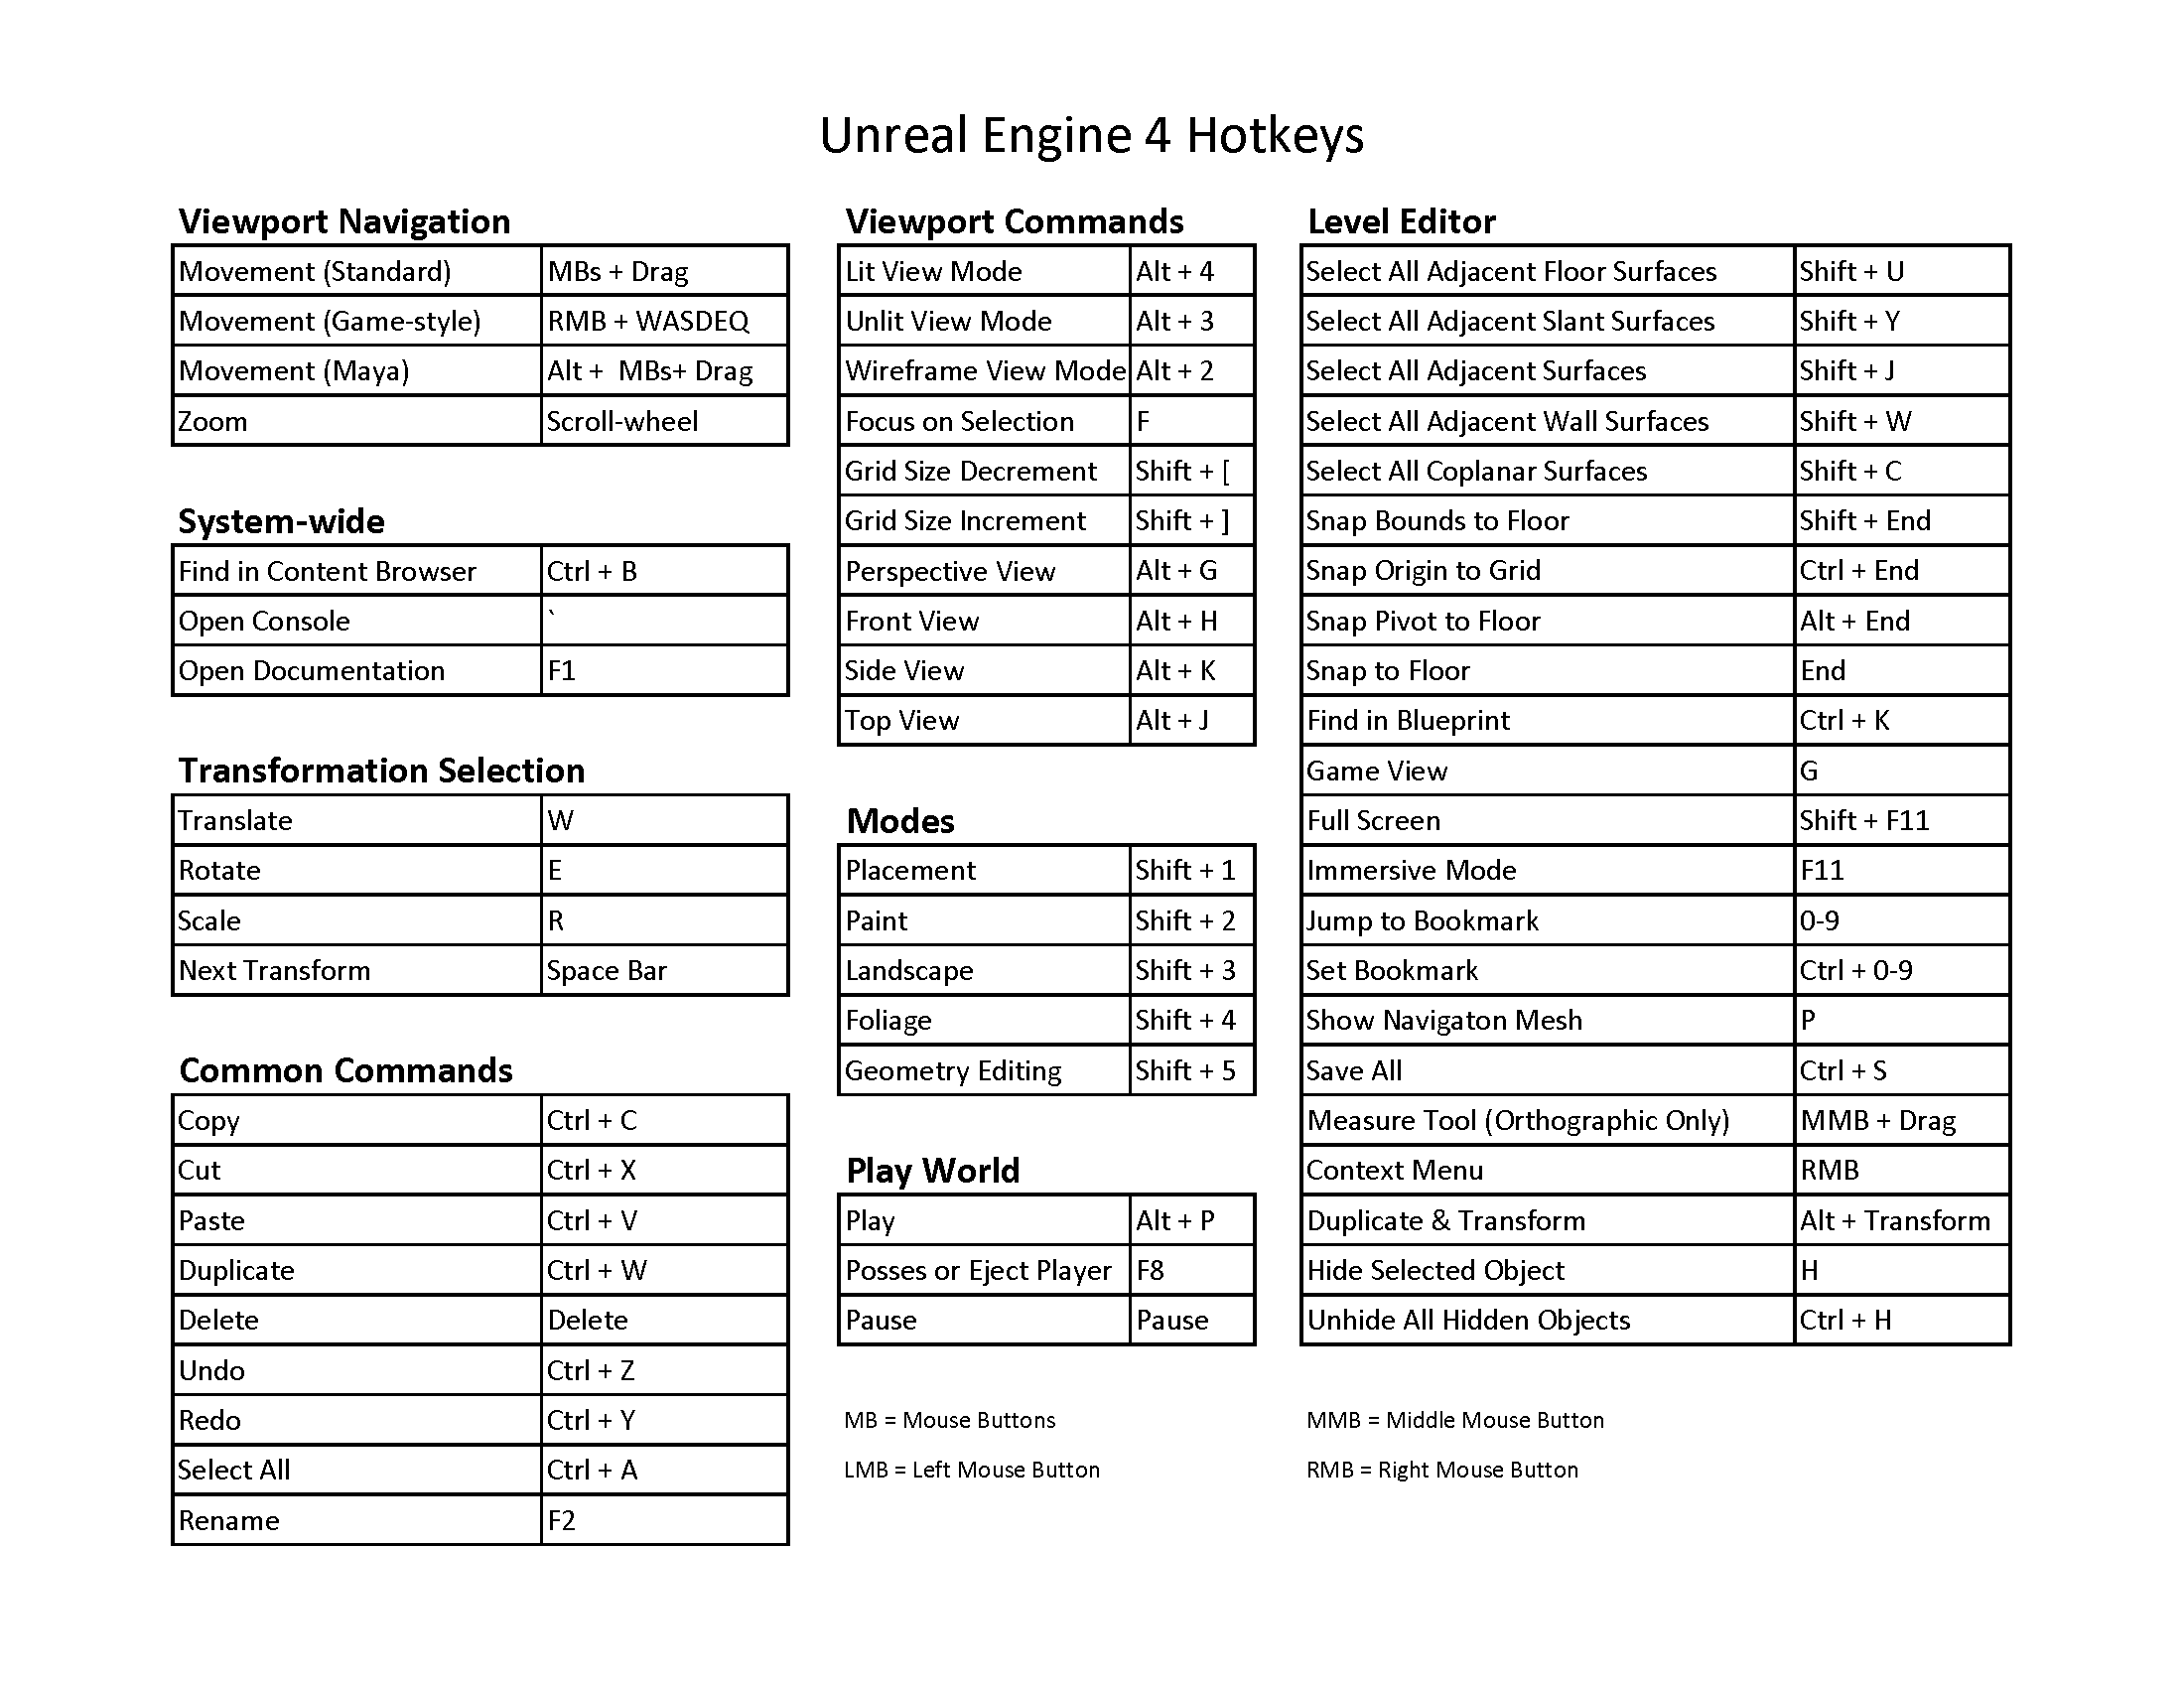 Unreal Engine 4 Hotkeys Cheat Sheet